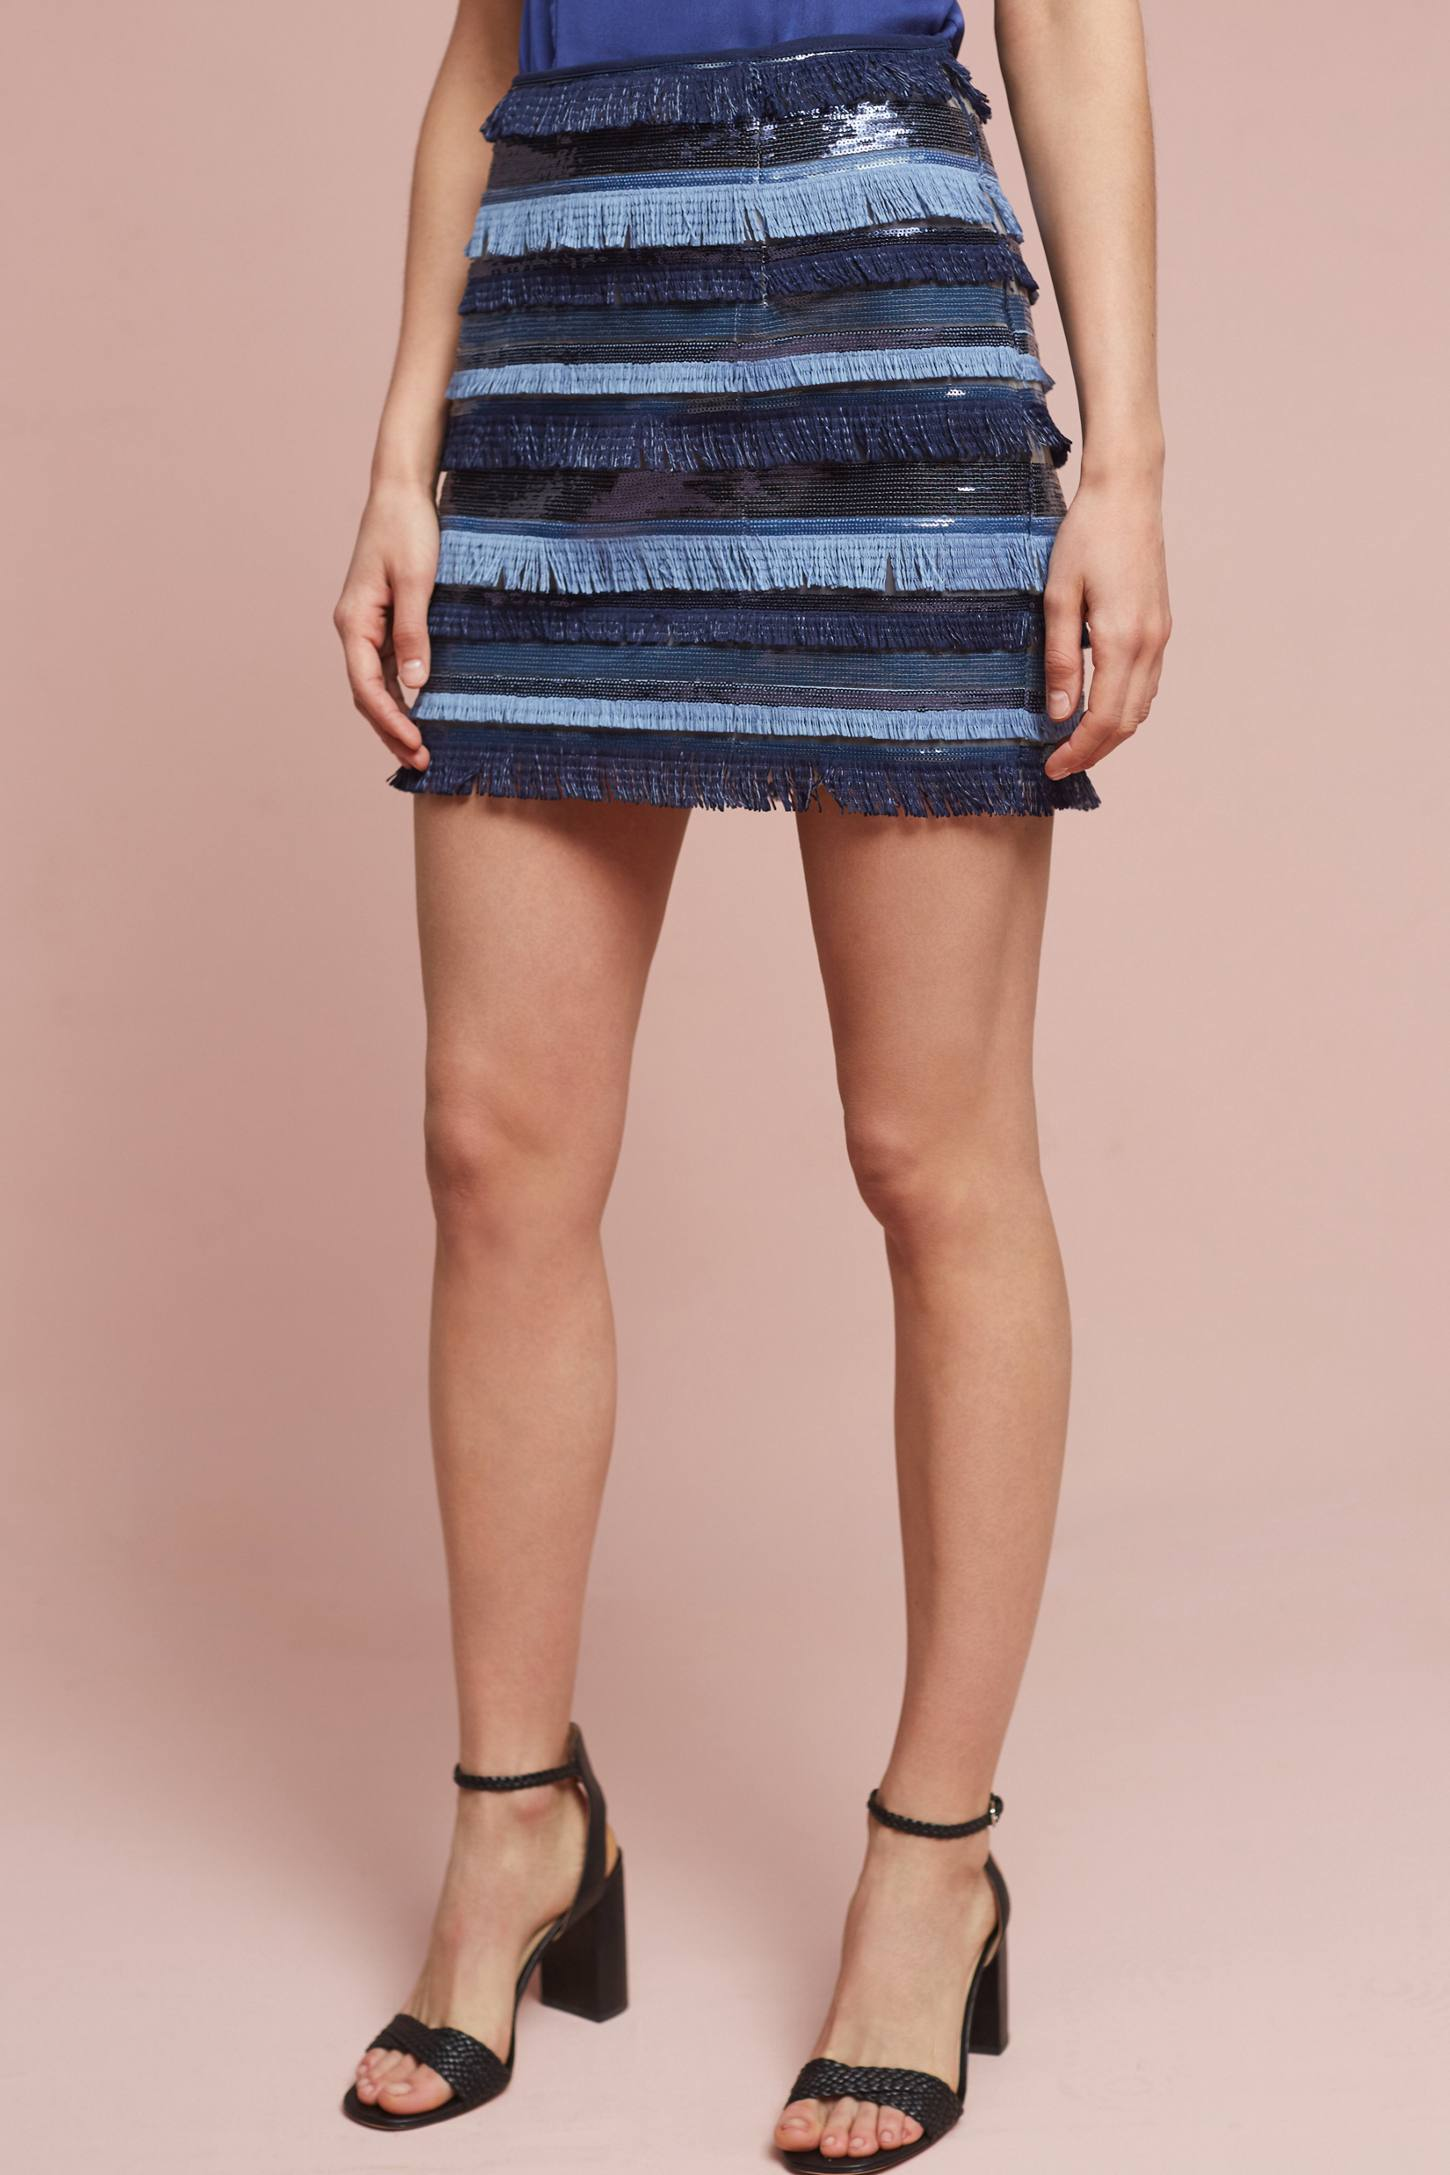 Slide View: 2: Waves Fringed Mini Skirt